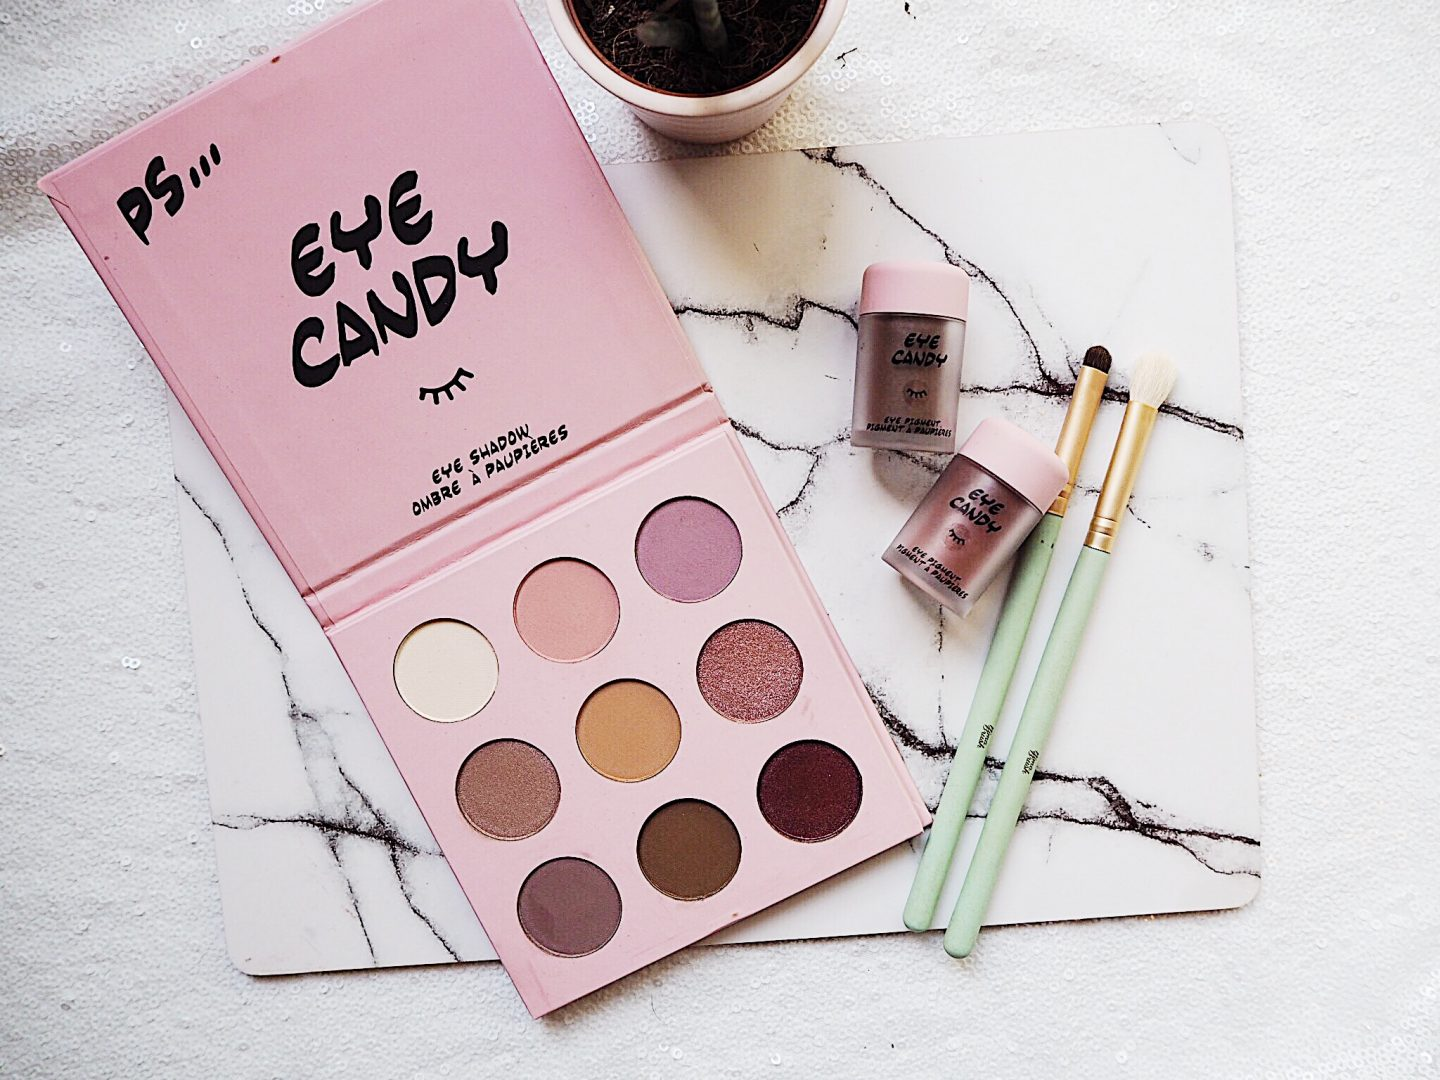 Eye Candy Eyeshadow Palette and Pigments By Primark